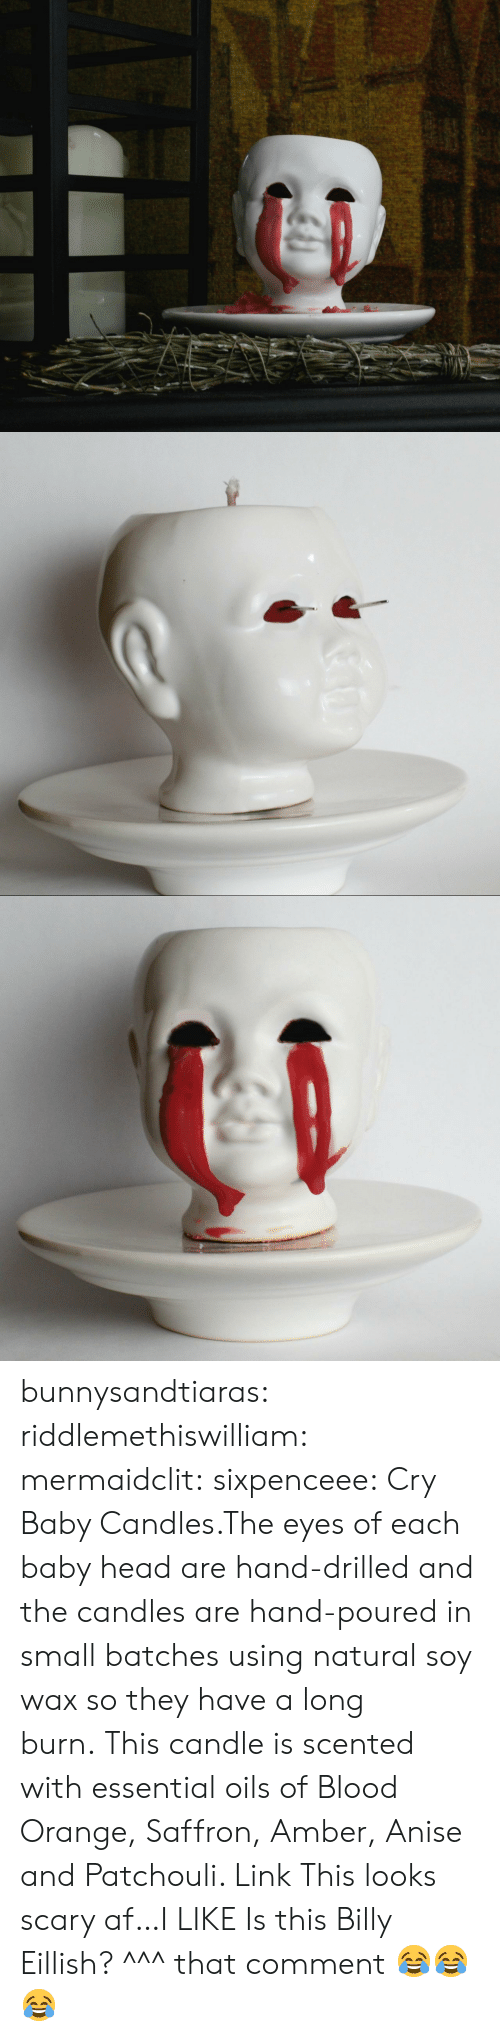 essential oils: bunnysandtiaras:  riddlemethiswilliam: mermaidclit:  sixpenceee:  Cry Baby Candles.The eyes of each baby head are hand-drilled and the candles are hand-poured in small batches using natural soy wax so they have a long burn.This candle is scented with essential oils of Blood Orange, Saffron, Amber, Anise and Patchouli. Link  This looks scary af…I LIKE  Is this Billy Eillish?   ^^^ that comment 😂😂😂